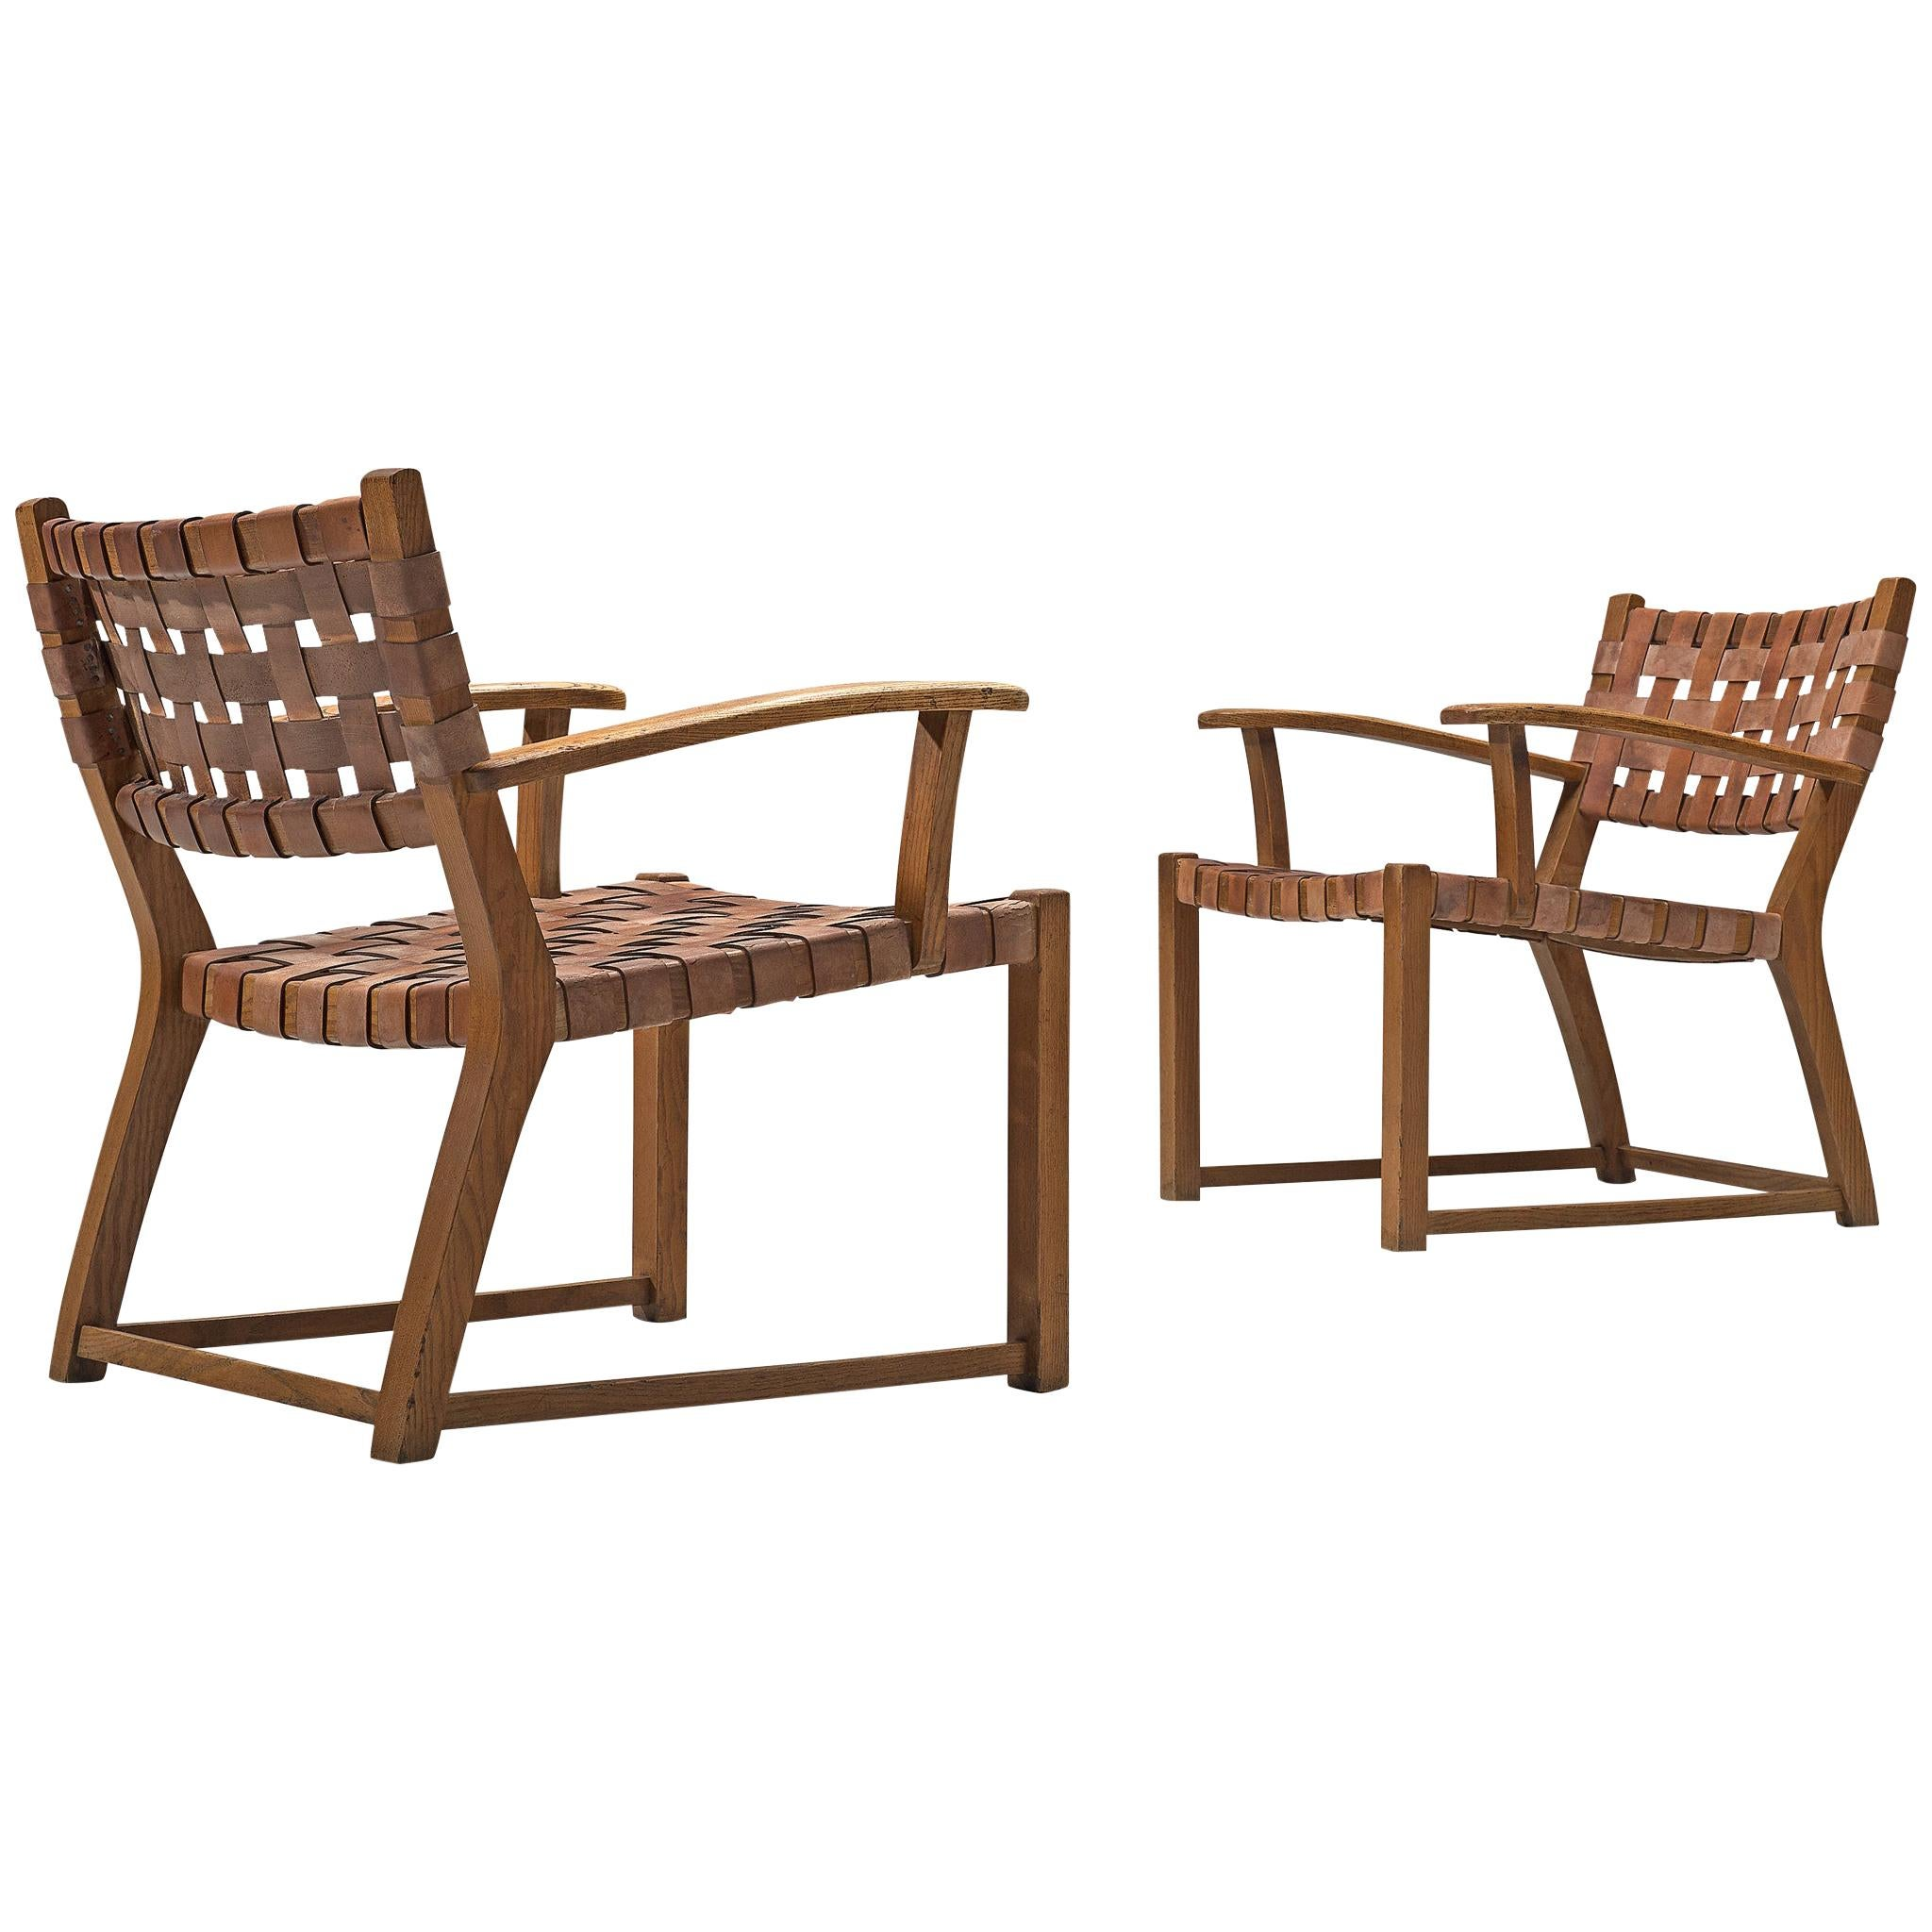 Set of Chairs with Cognac Leather Webbed Back and Seat